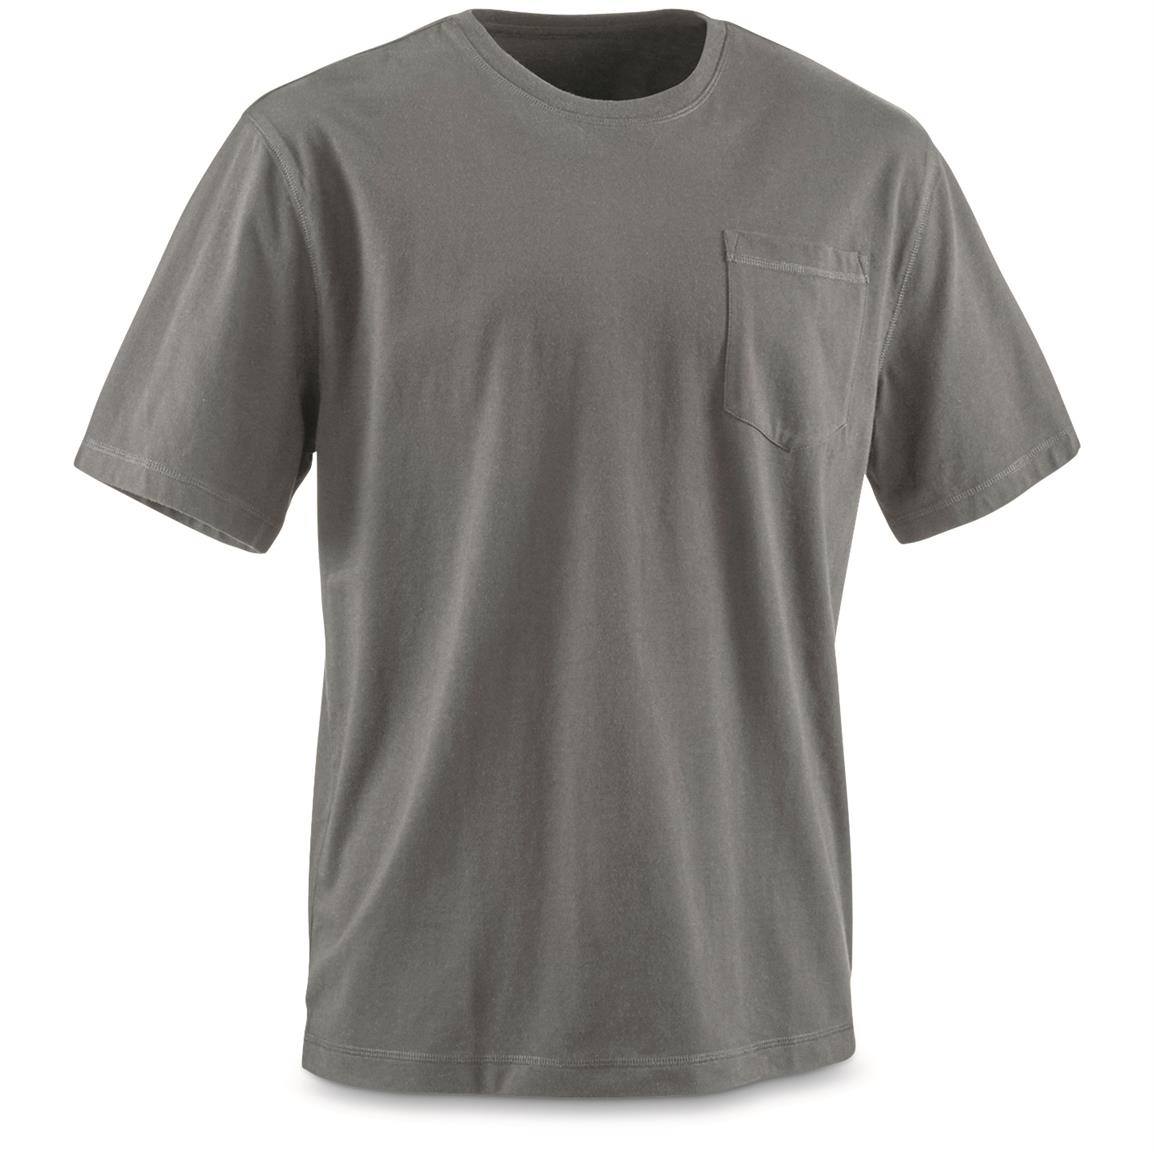 Guide Gear Men's Stain Kicker Short Sleeve Pocket T Shirt With Teflon, Gray